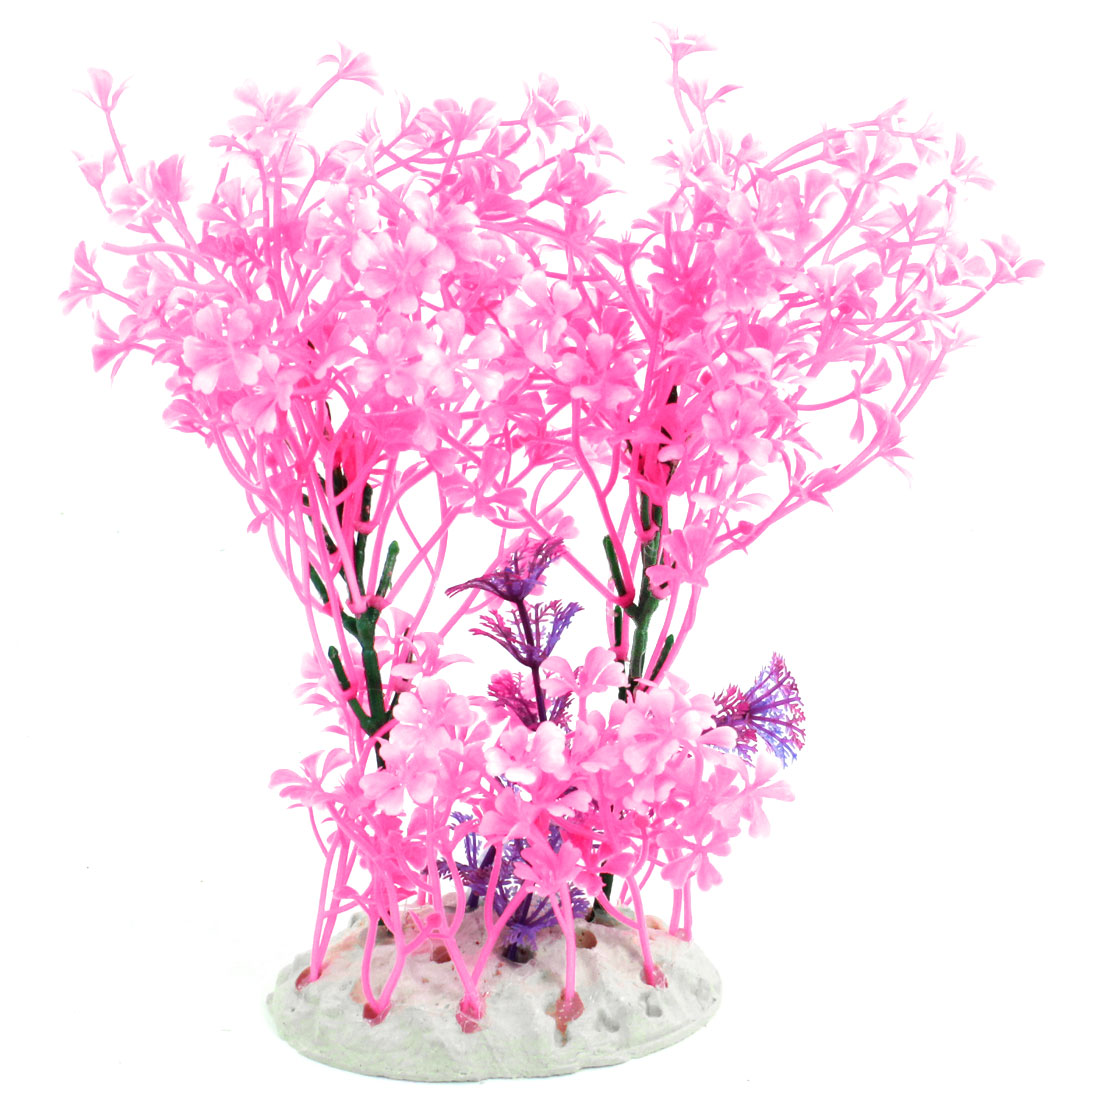 "Fish Bowl Ornament Manmade Pink Underwater Plants Tree Grass 8.5"" Height"